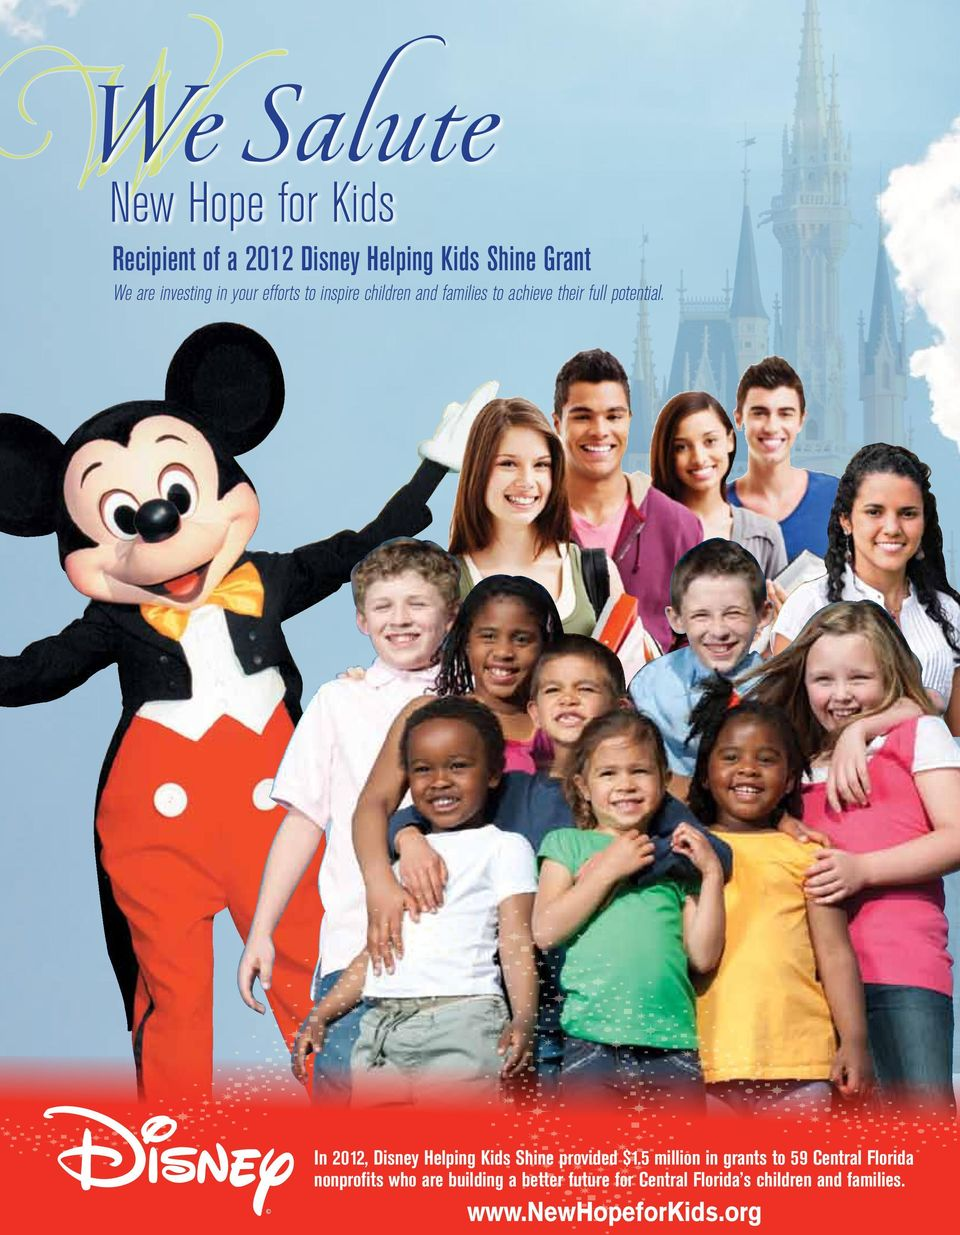 14 Baldwin Park Living In 2012, Disney Helping Kids Shine provided $1.